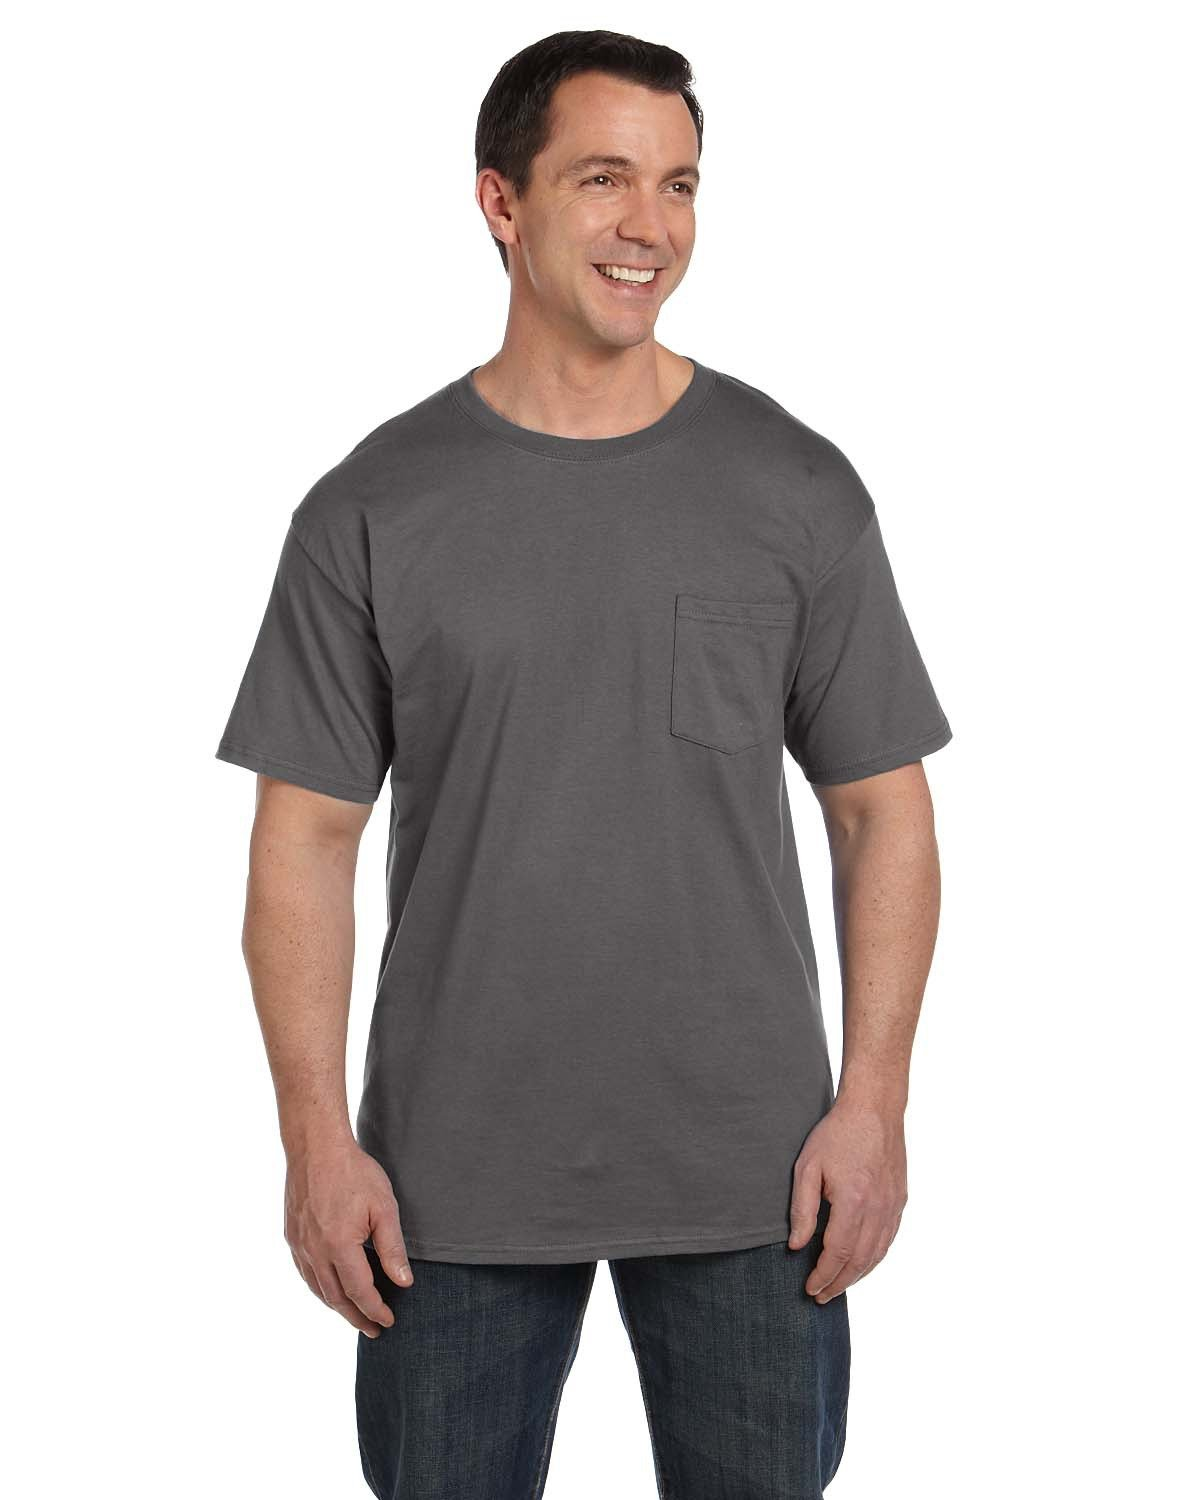 Hanes Adult Beefy-T® with Pocket SMOKE GRAY